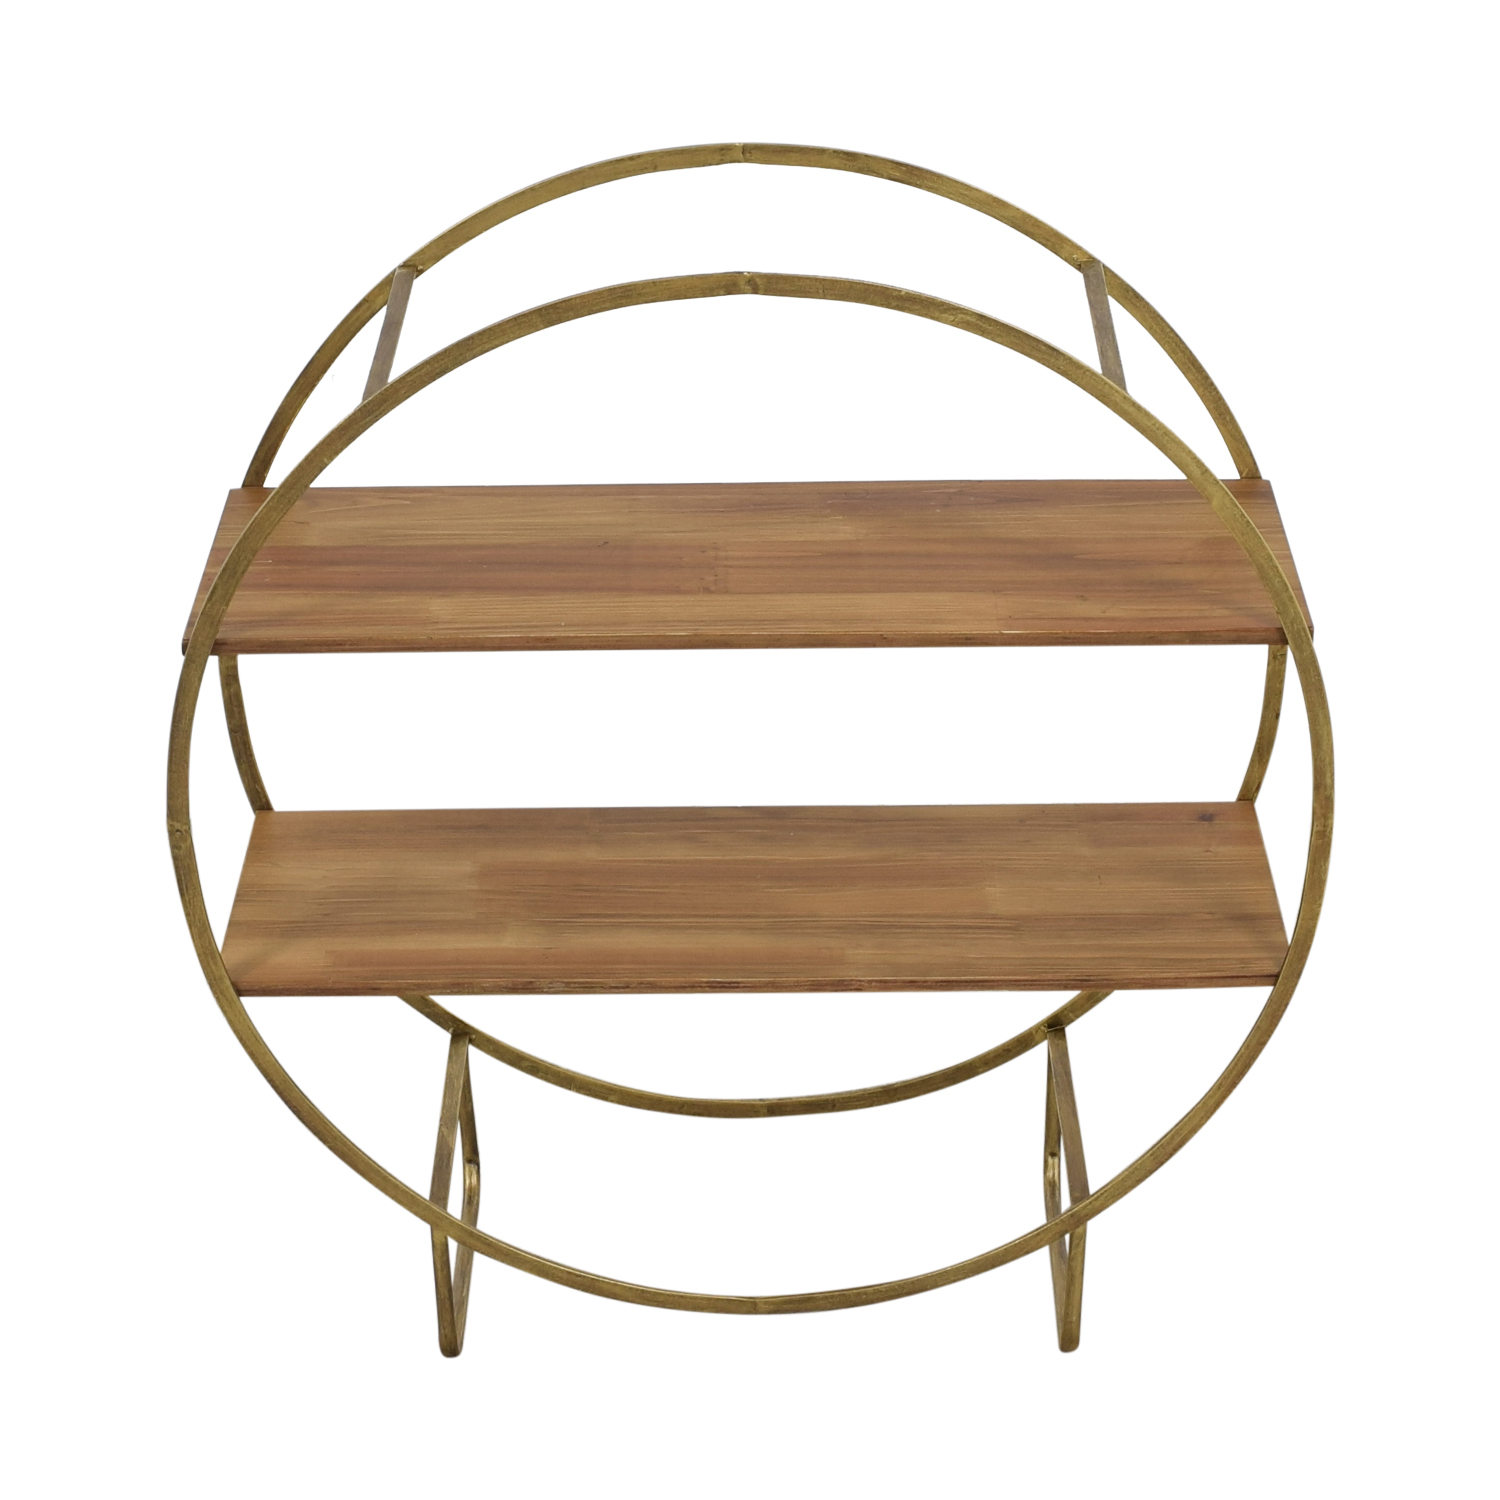 Urban Outfitters Urban Outfitters Brigid Circle Shelf ct